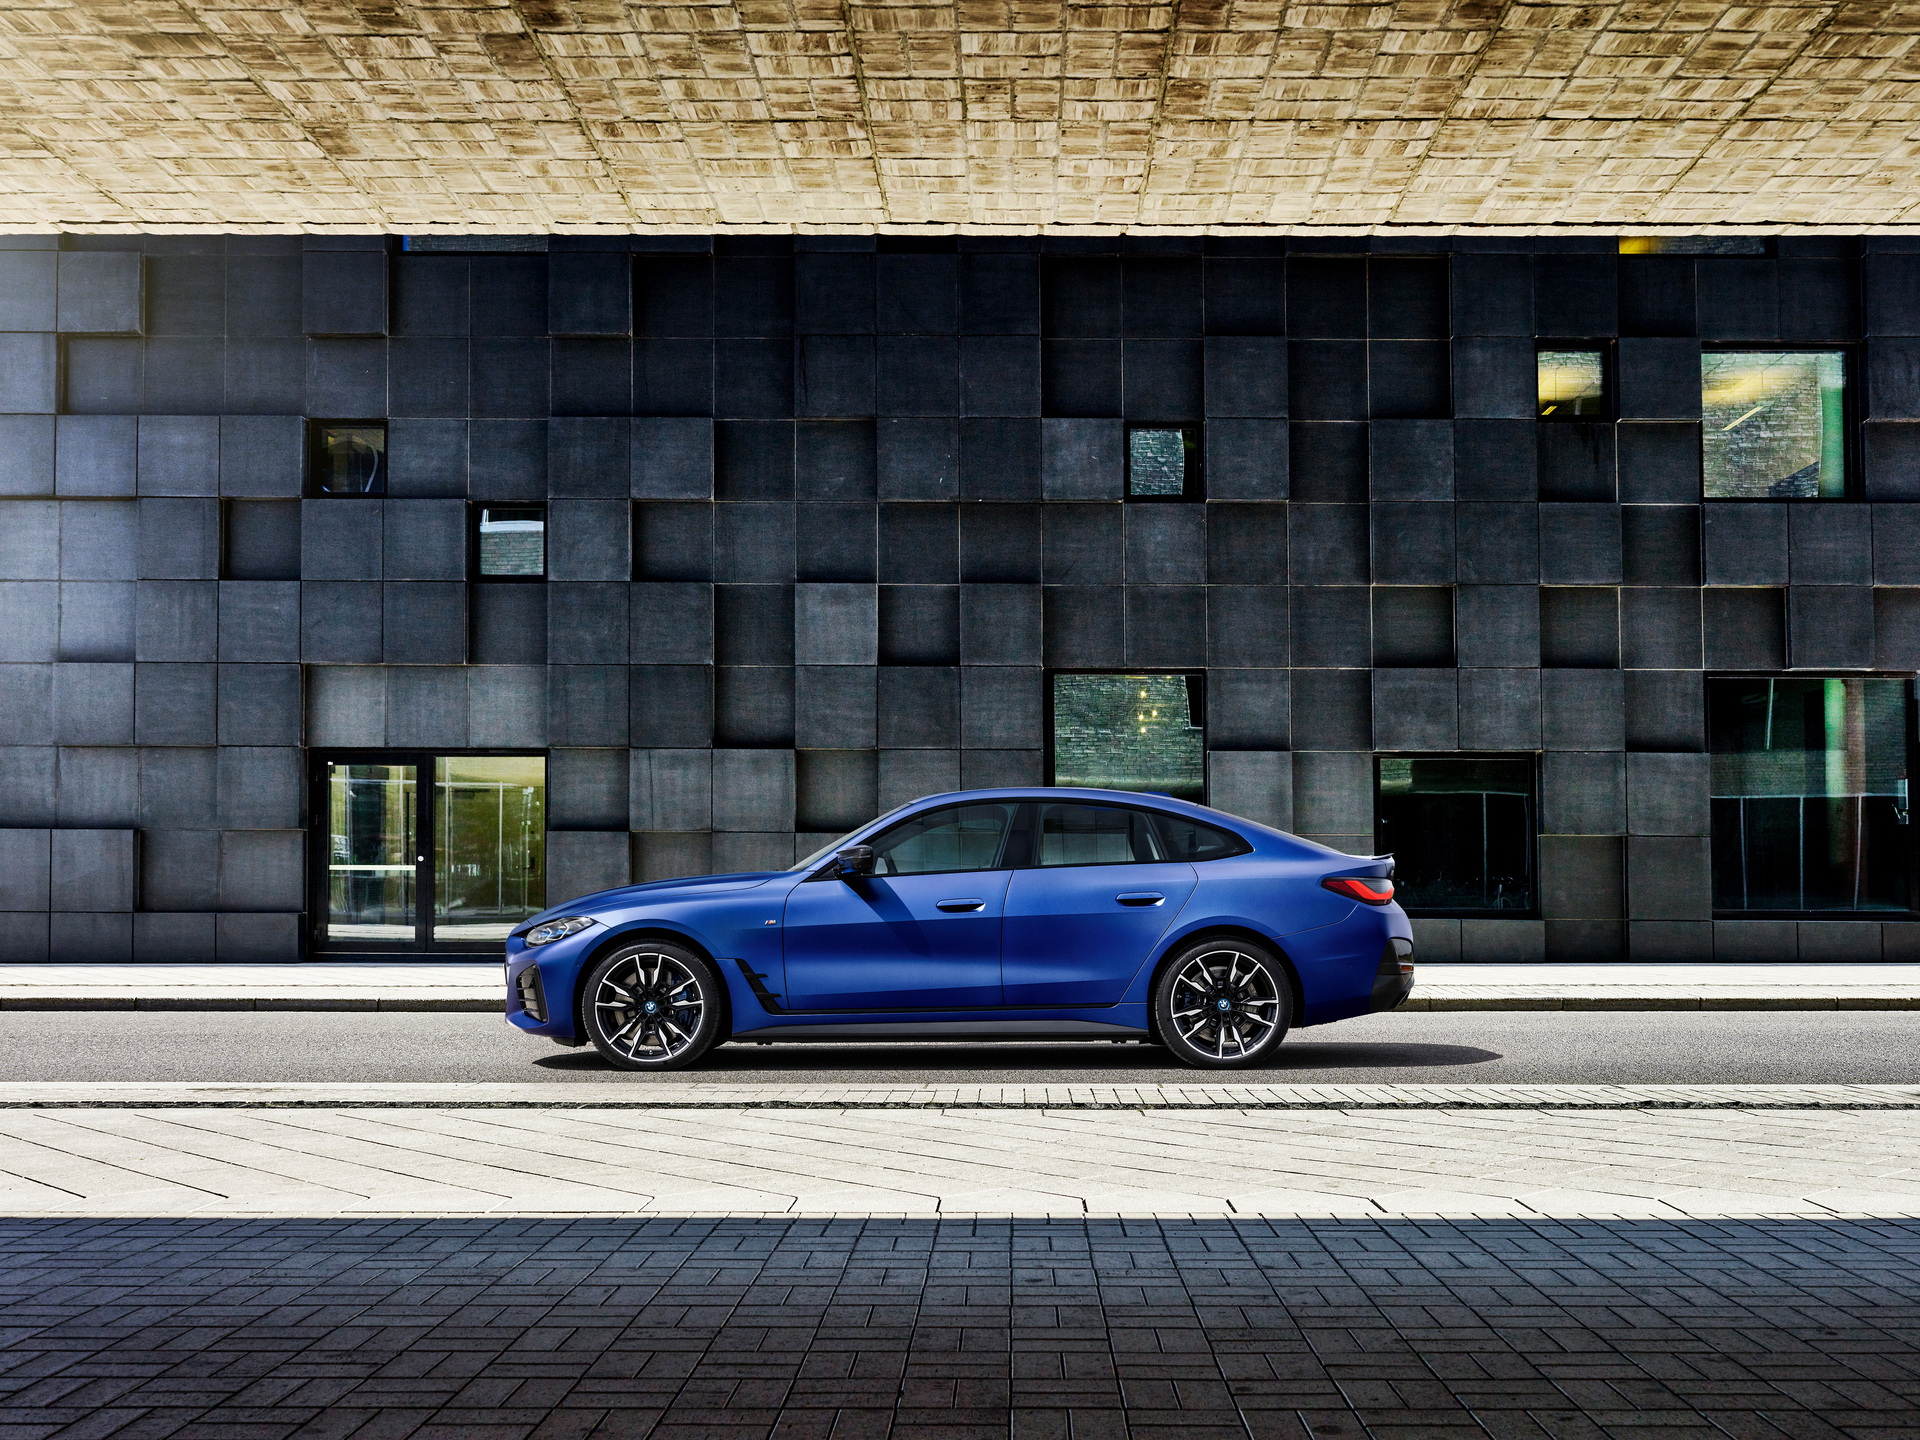 P90423617 Highres The Bmw I4m50 6 2021